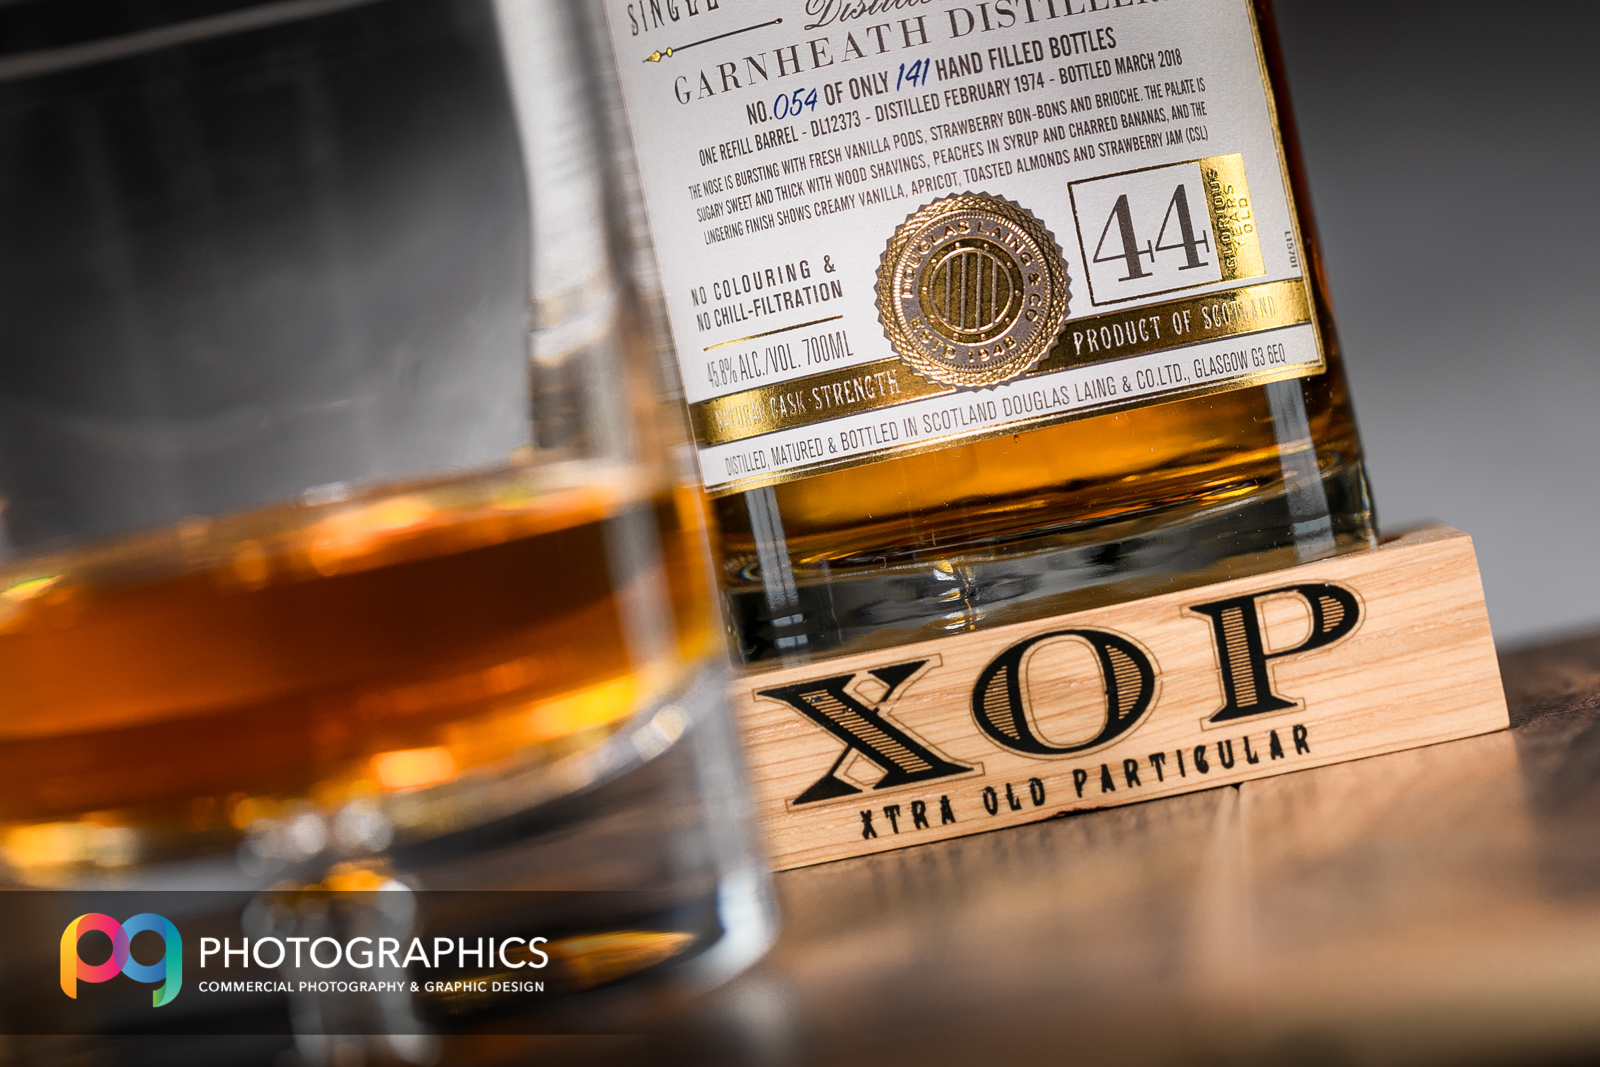 product-whisky-photography-glasgow-edinburgh-scotland-12.jpg